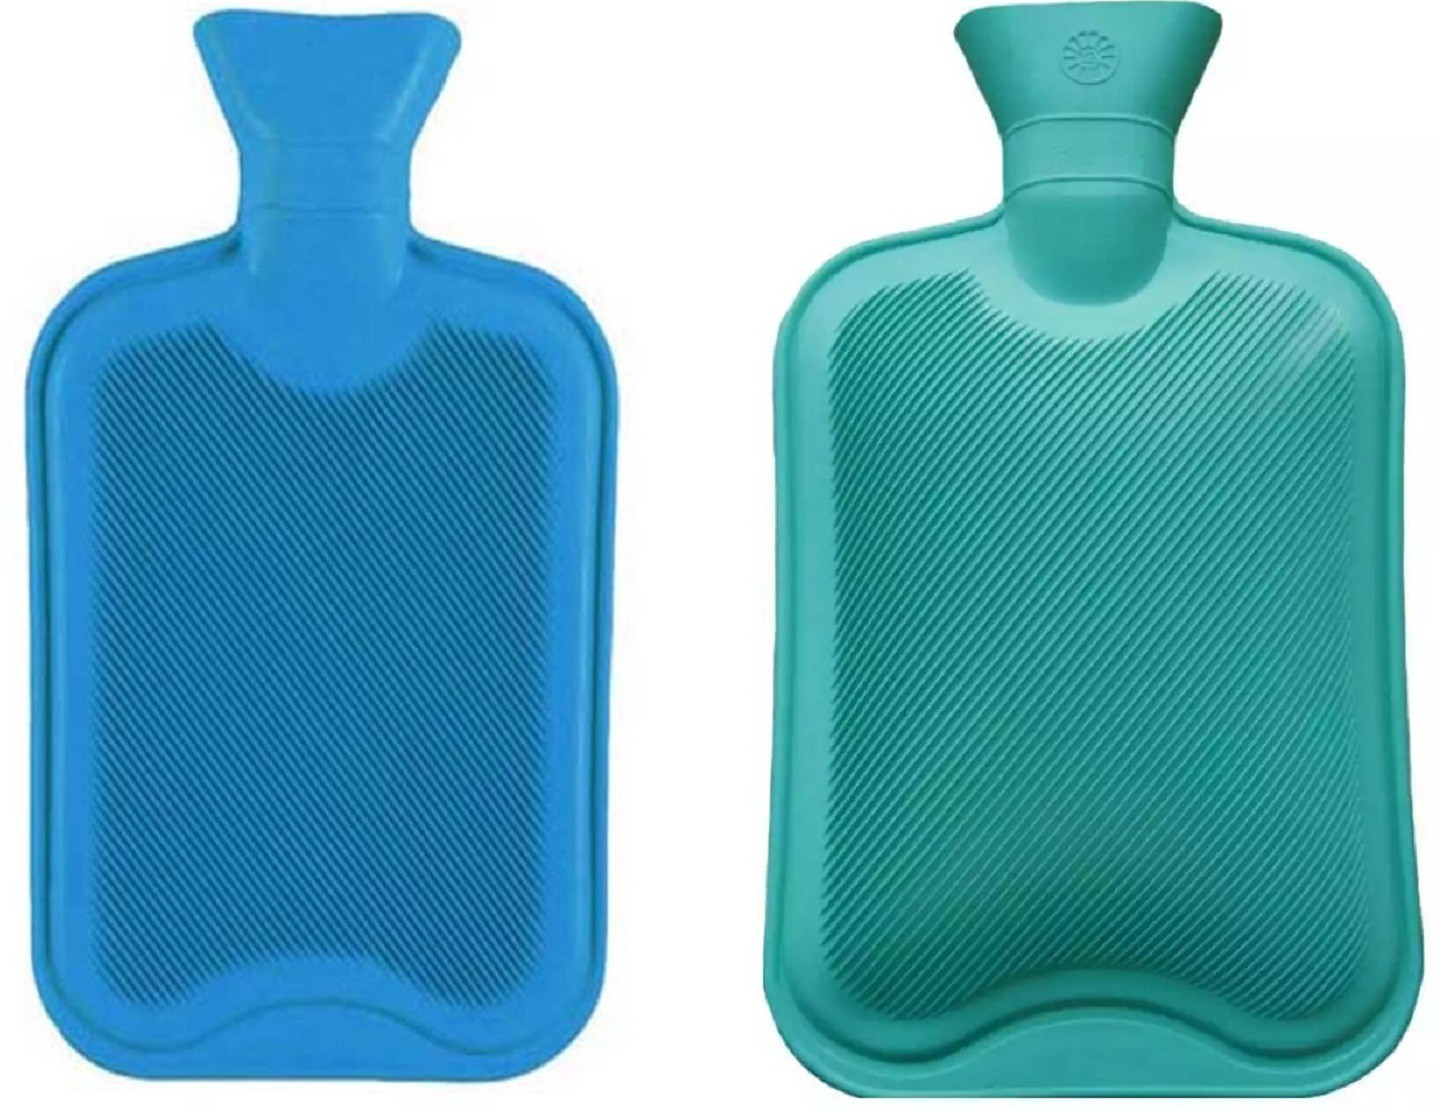 Bruzone Pain Comfort Combo Non-electrical 3 L Hot Water Bag(Blue, Green)